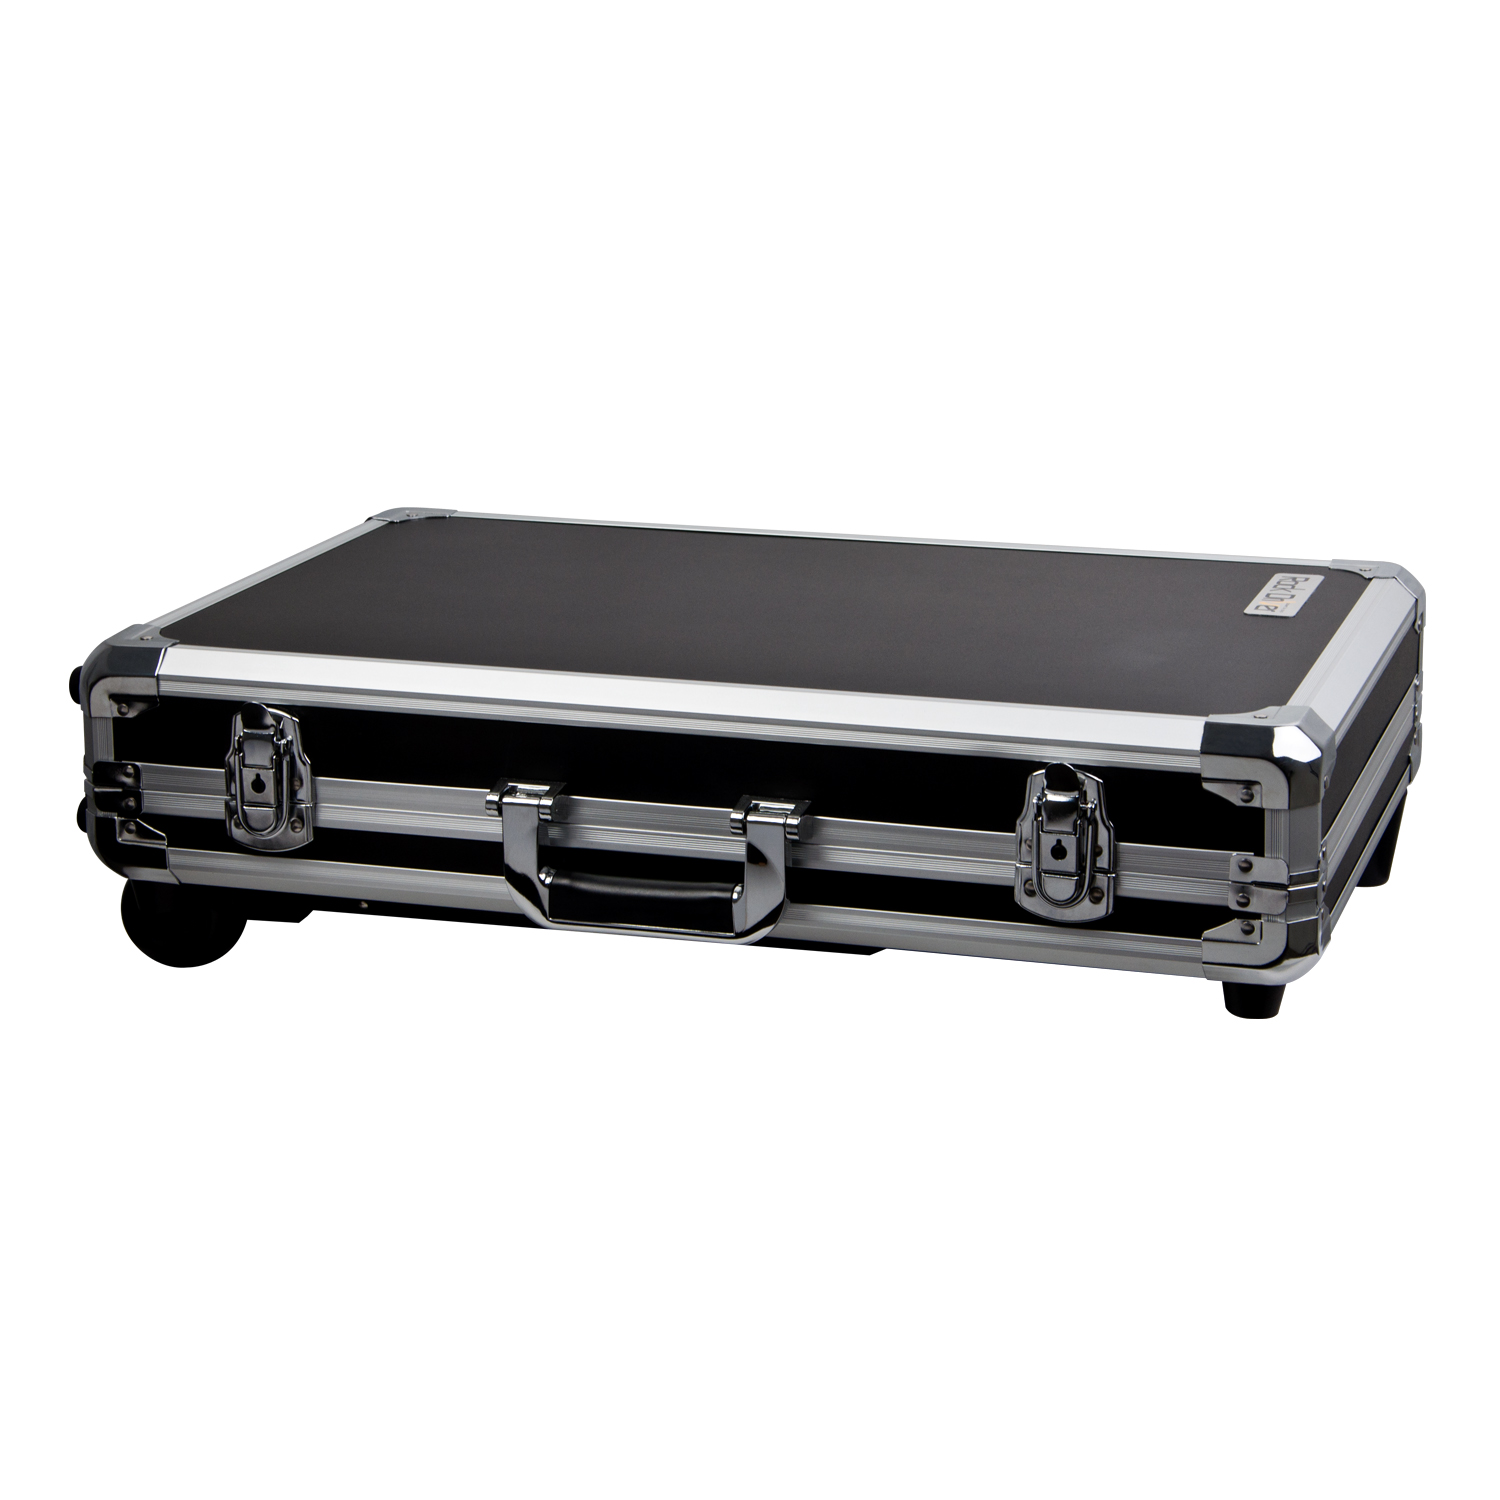 [JOYO-RD-3-Coupe-Driver-RockDriver-Series-Pedal-Board-Flight-Trolley-Case (1)]